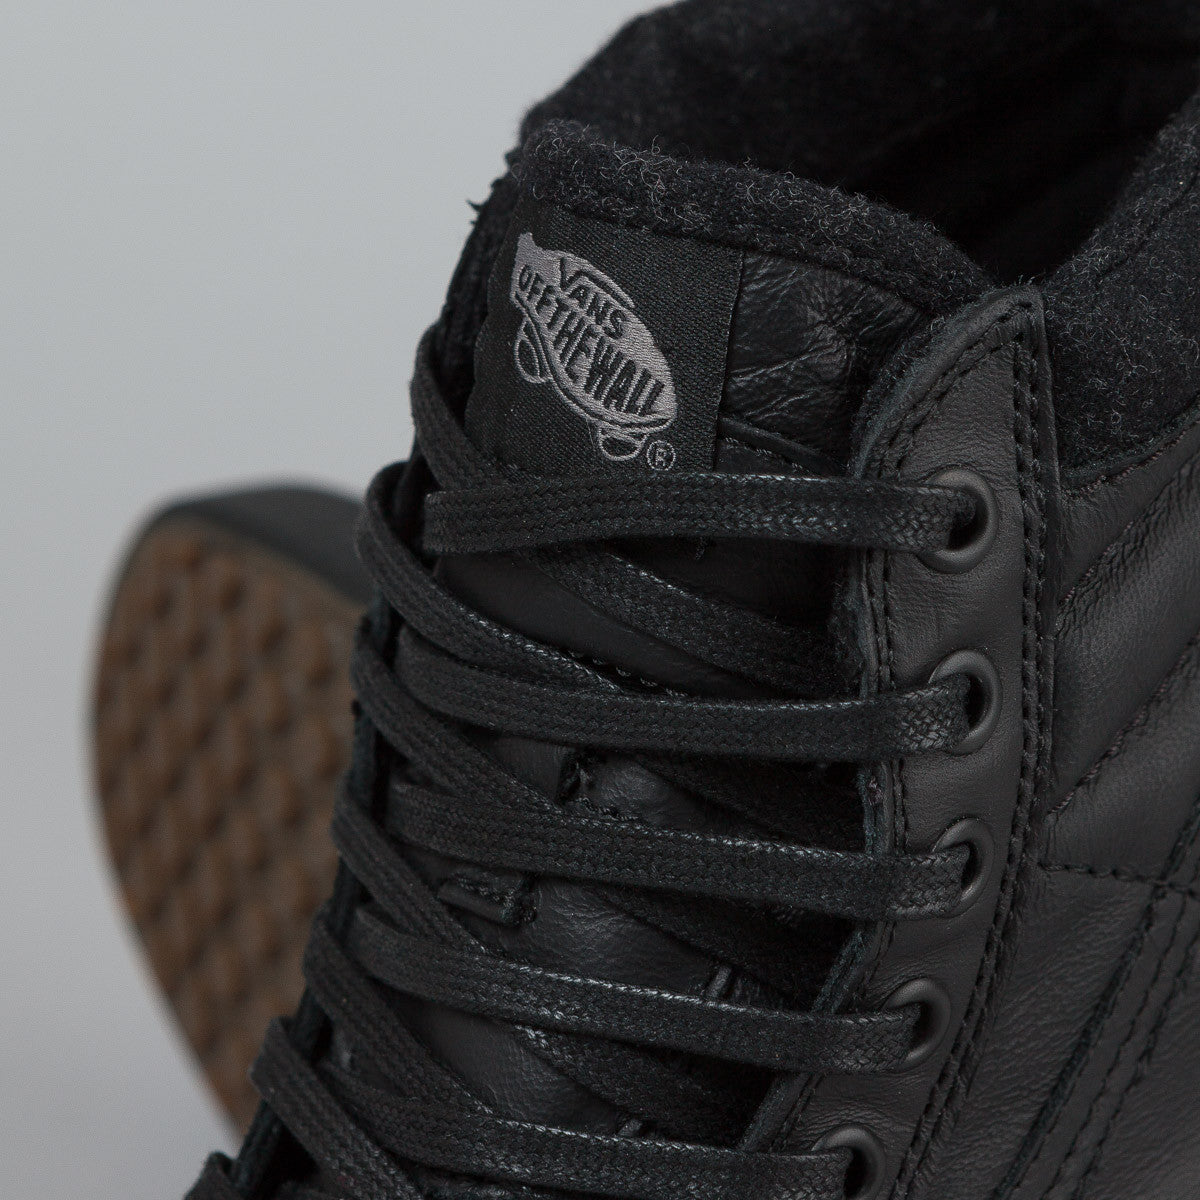 Vans Sk8-Hi MTE Shoes - Black / Leather